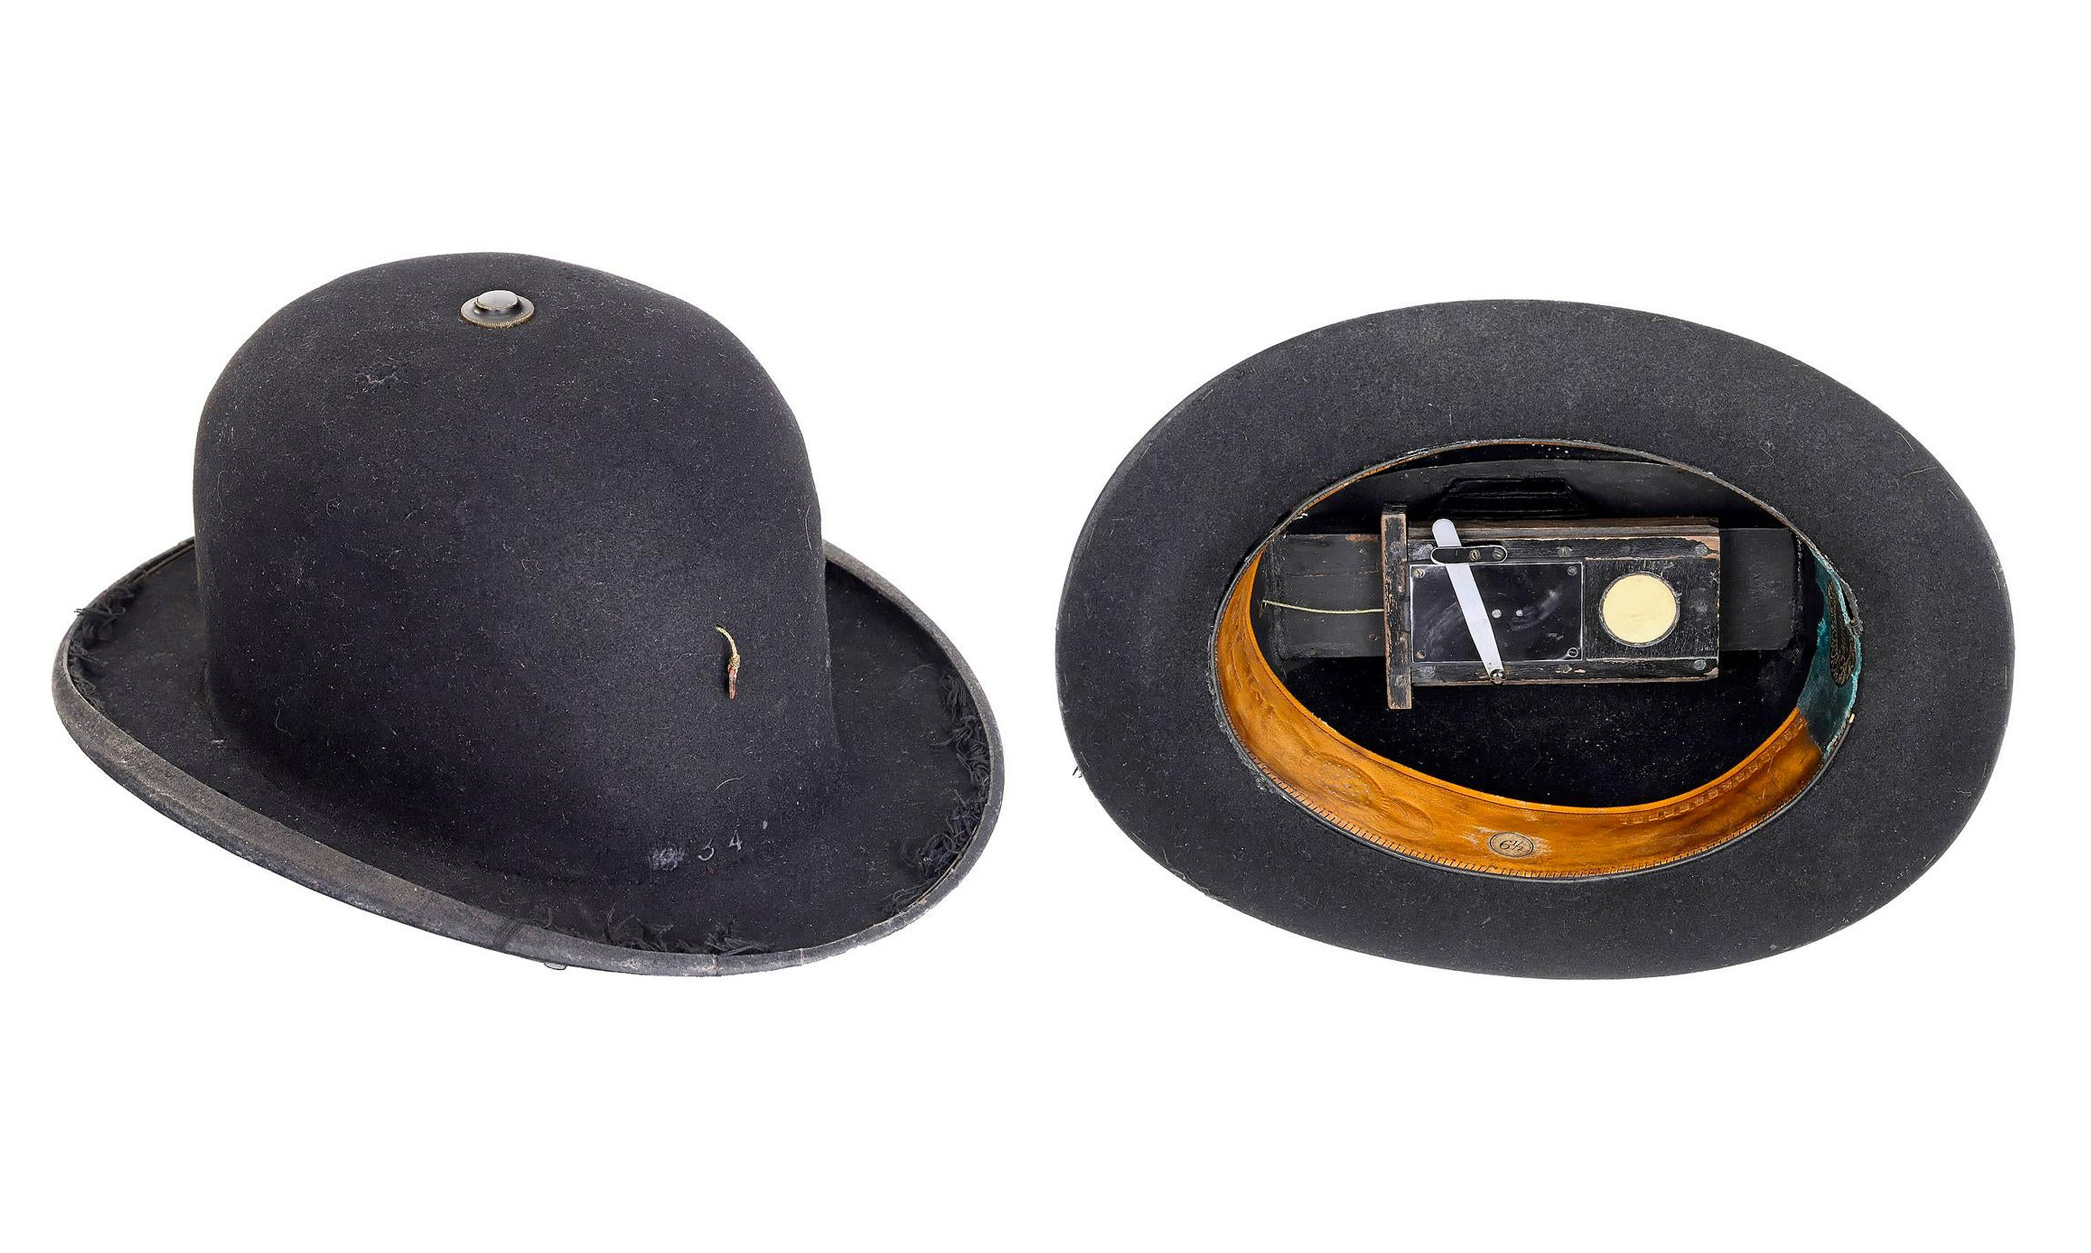 Snappy spy cameras head to auction